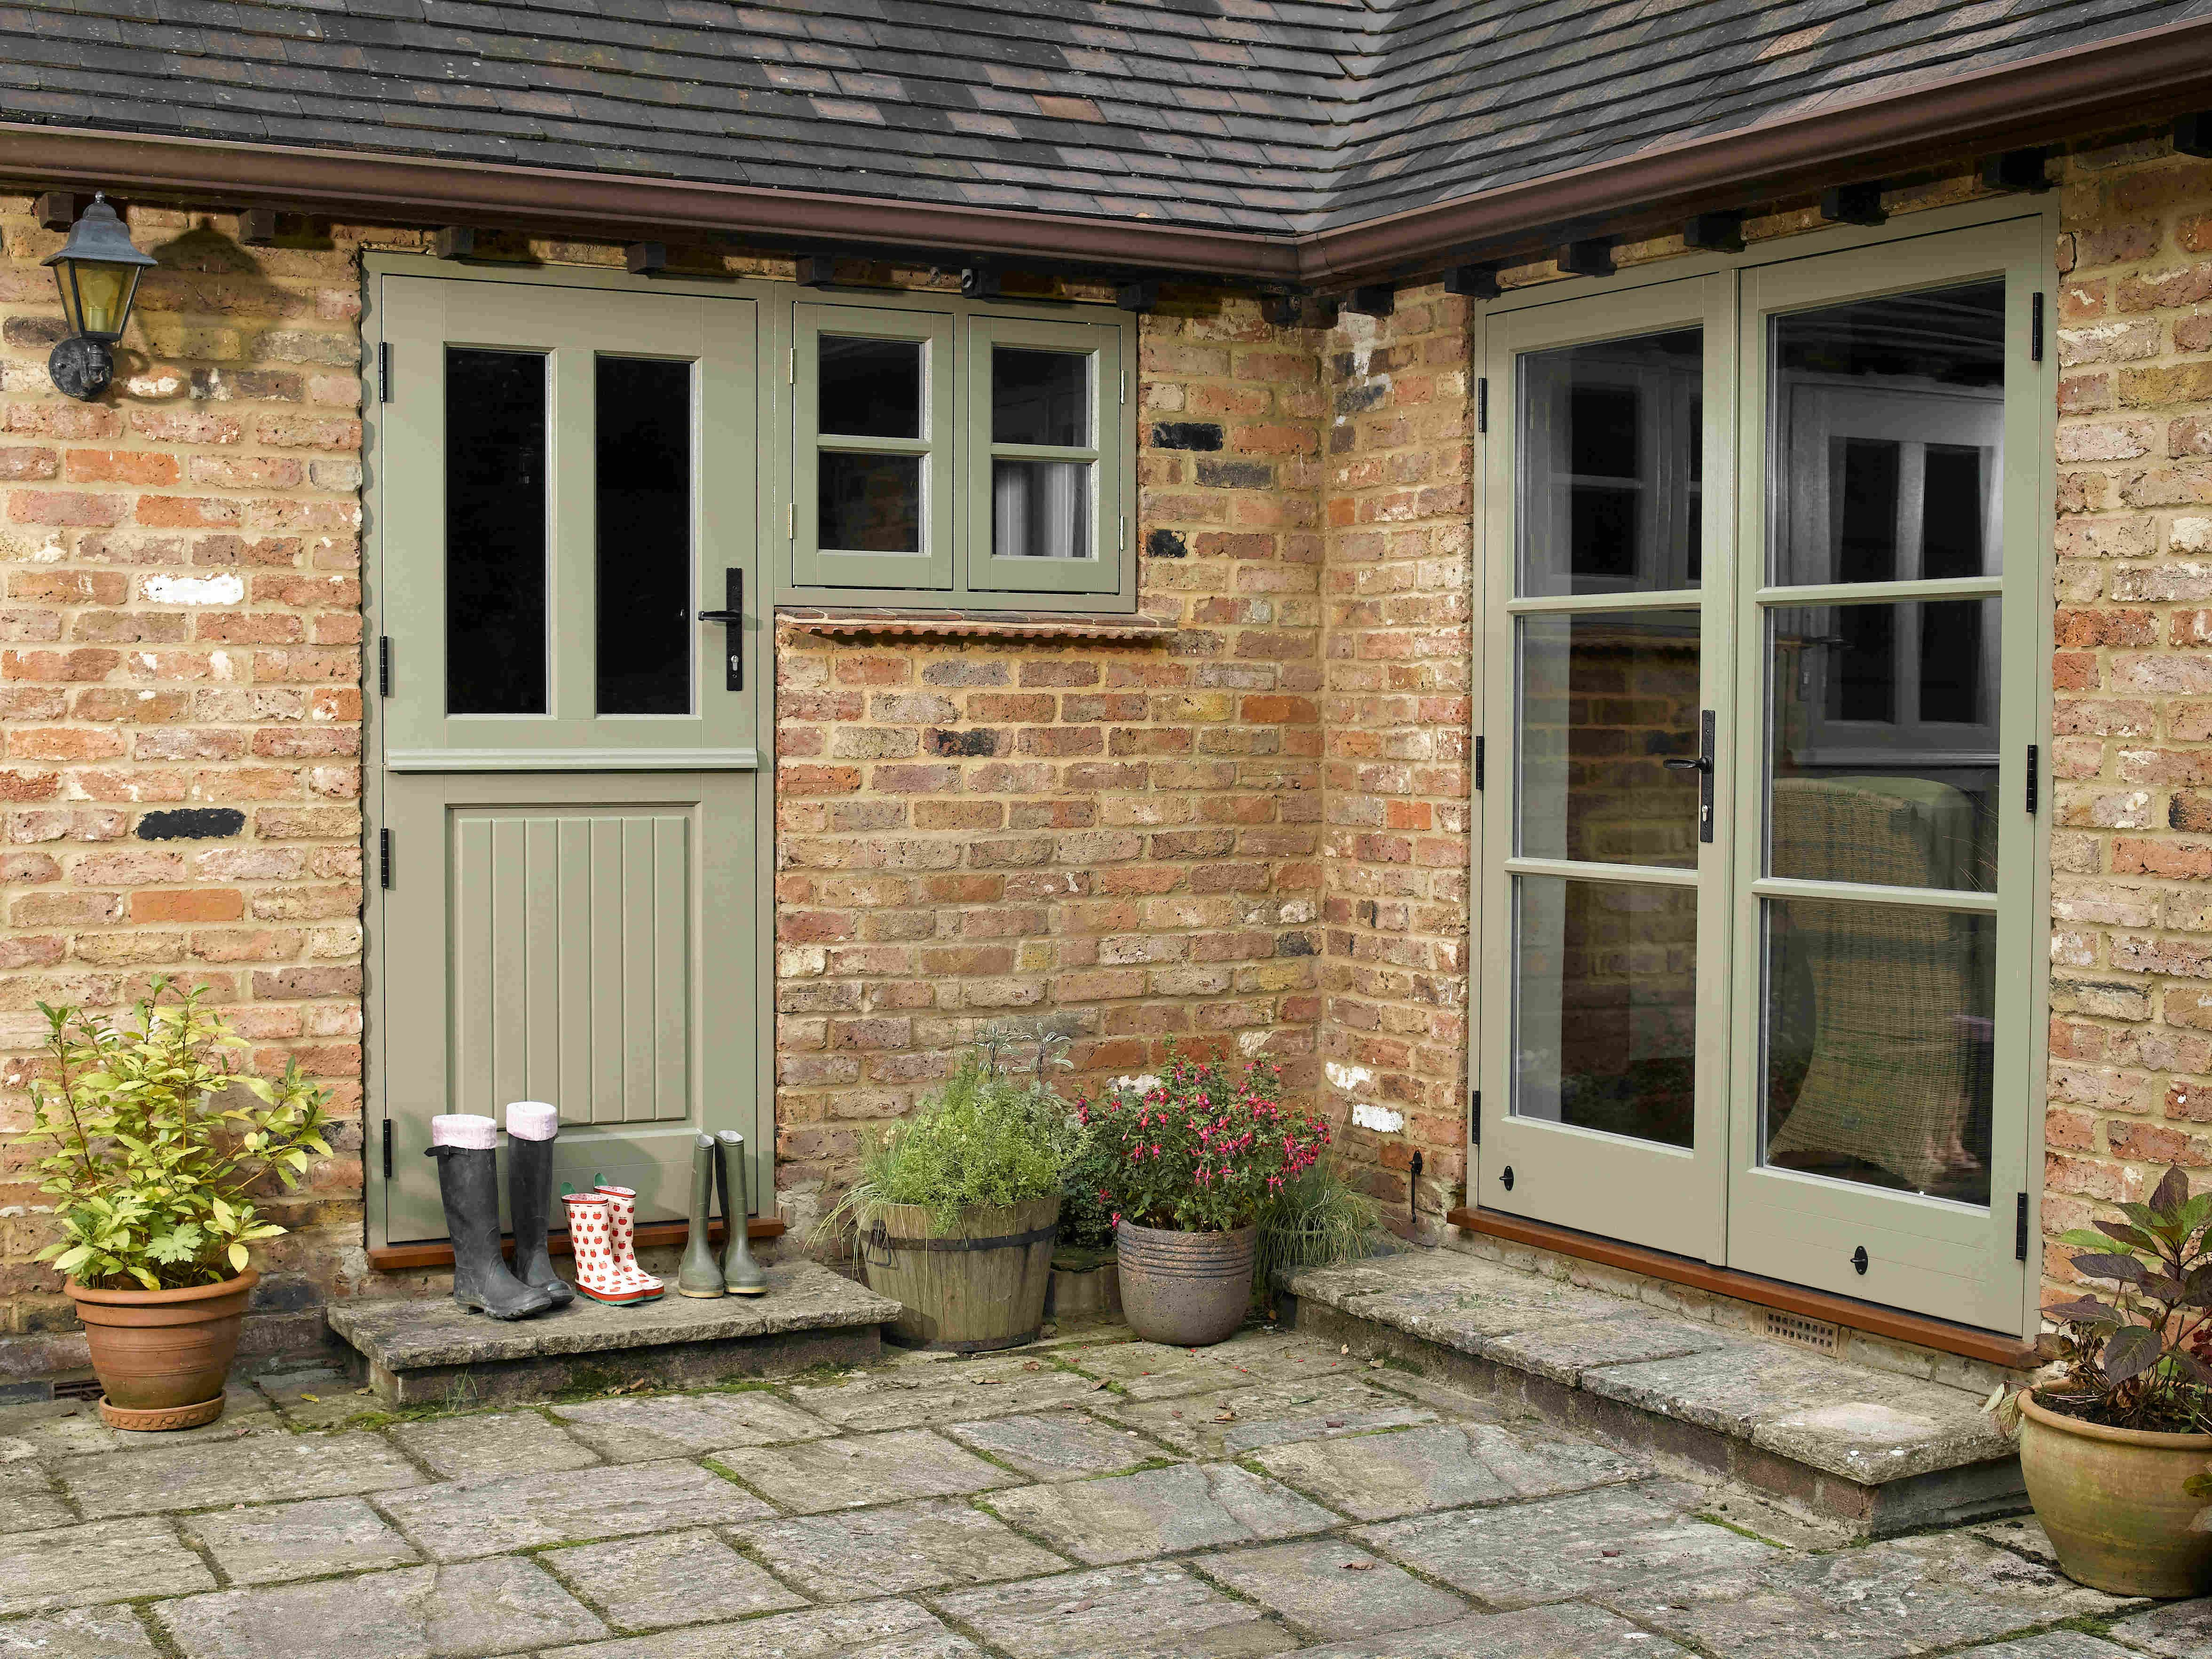 window and on storm best bar style cottage front pinterest windows images upvc gardiniawindows doors grey with agate